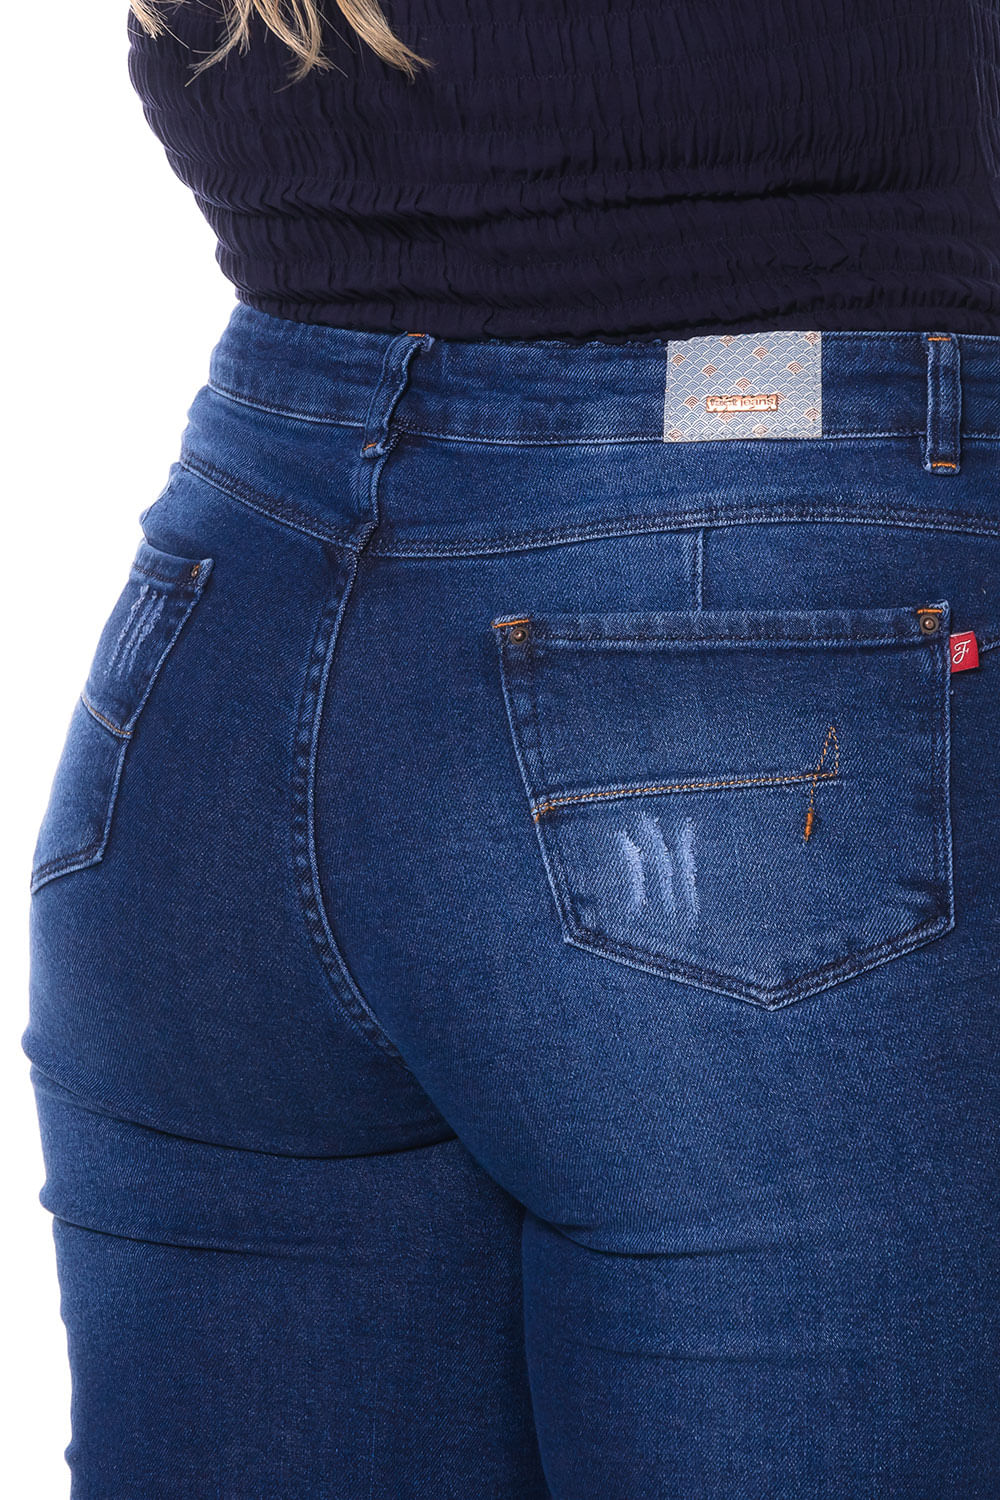 FCT5148_Calca_Cropped_Plus_Size_Jeans_AZUL_4